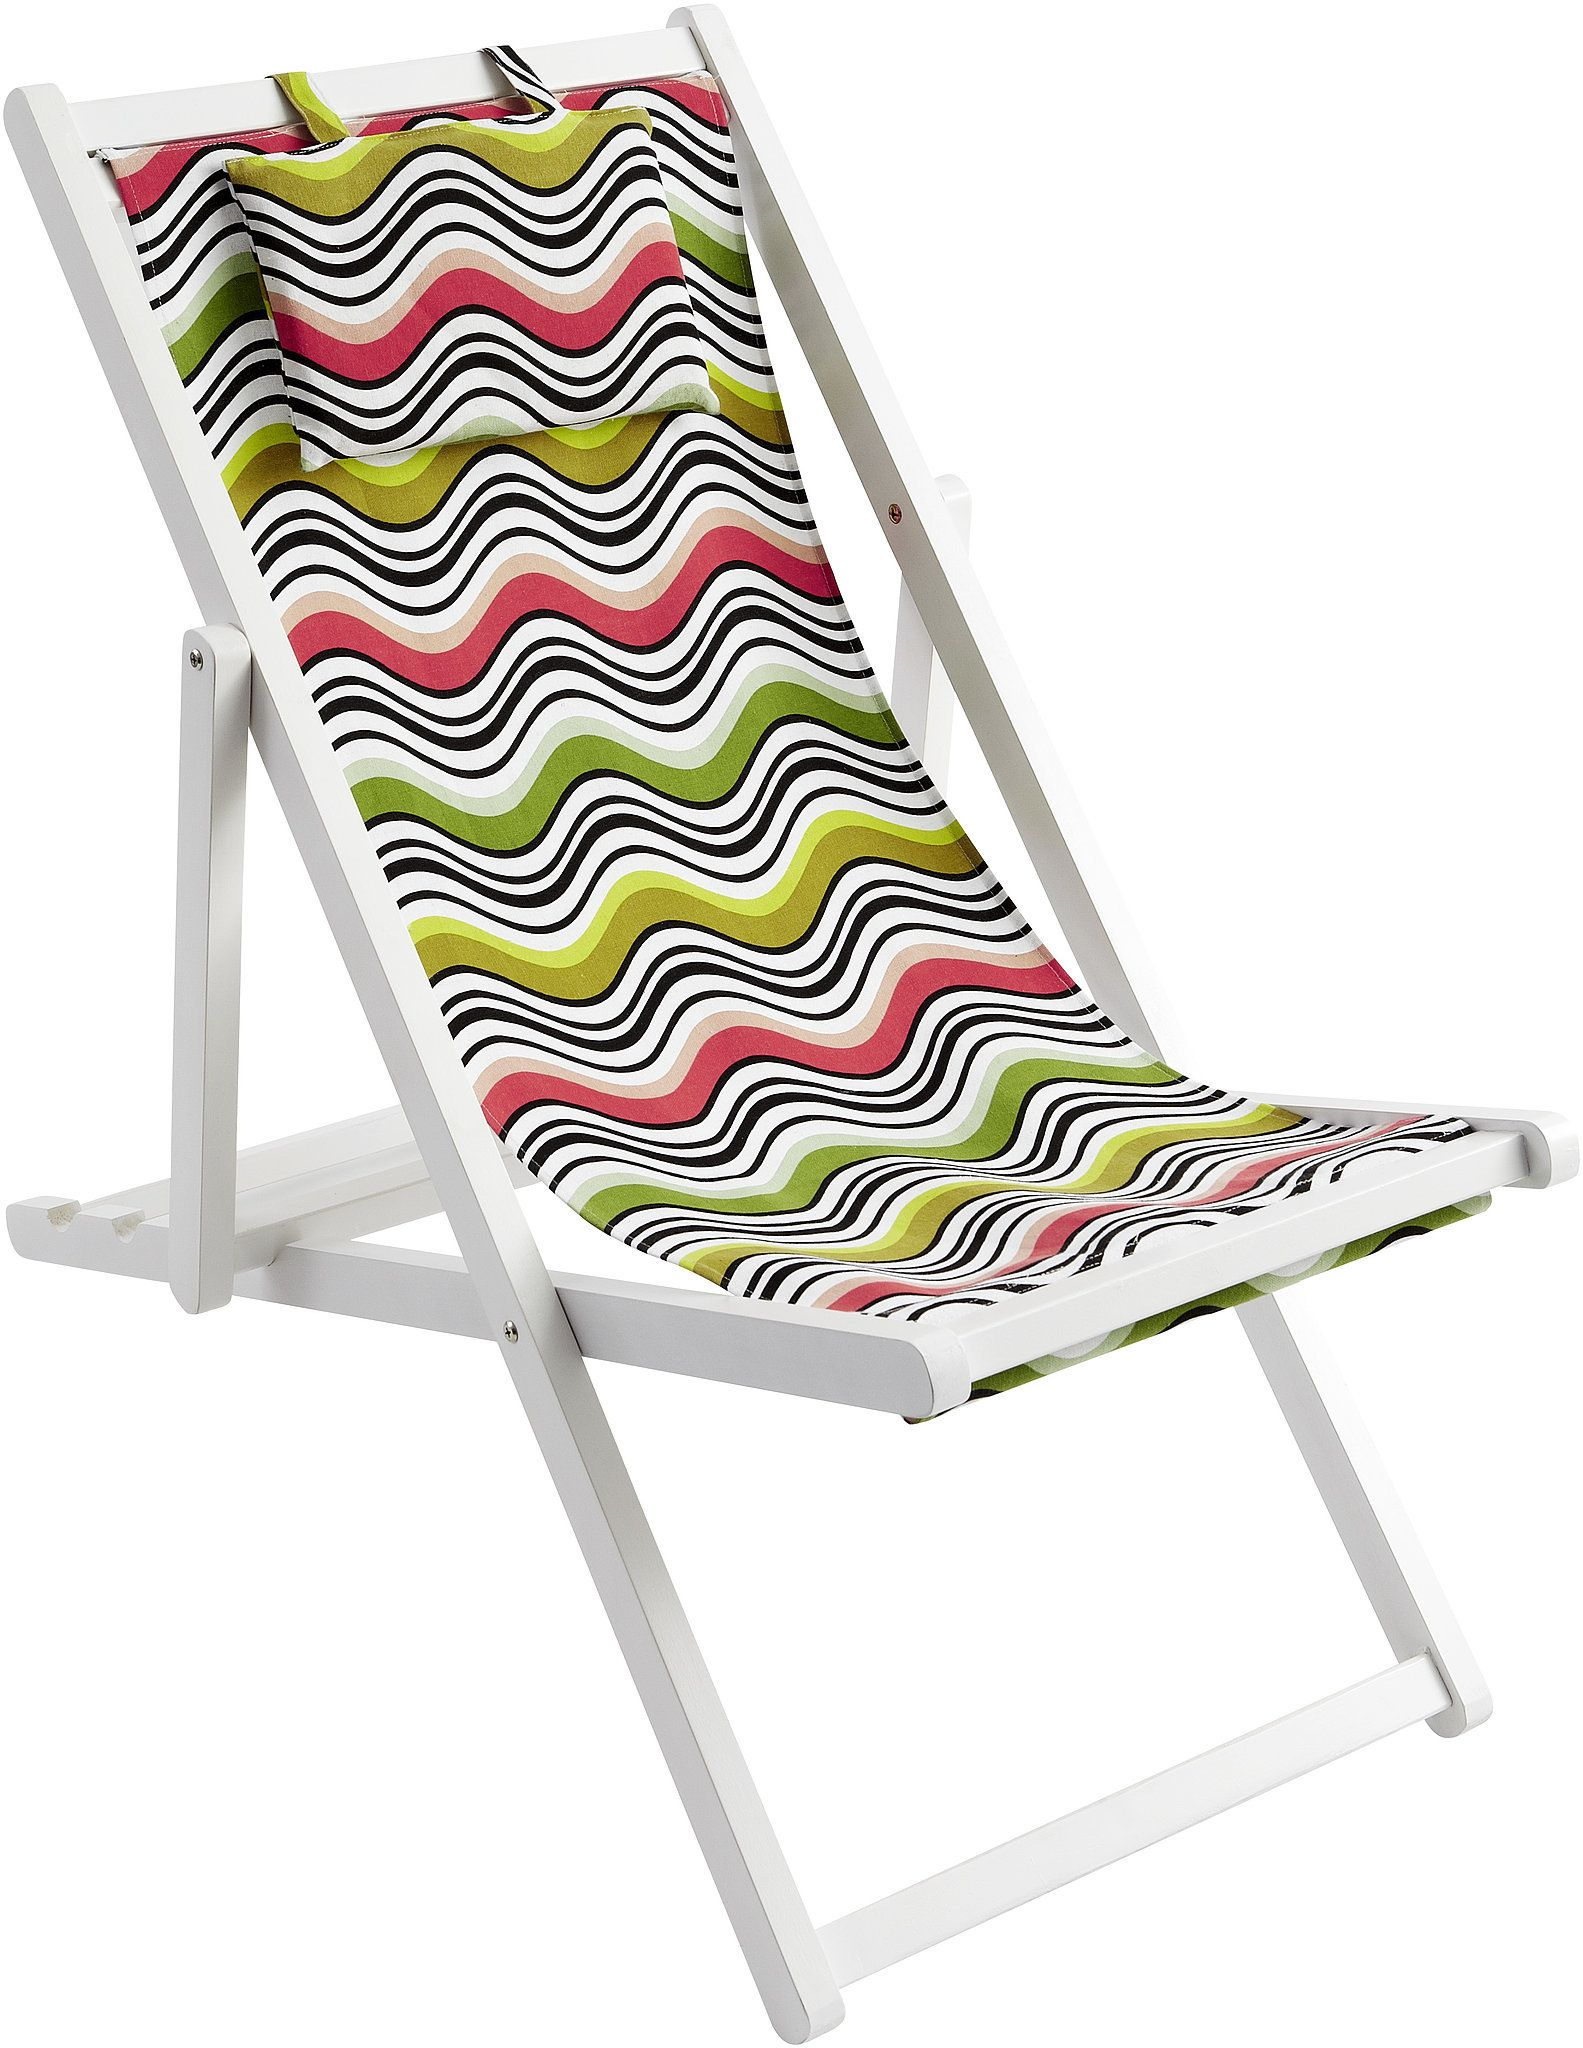 deck chair 99 deck chairs decking and missoni